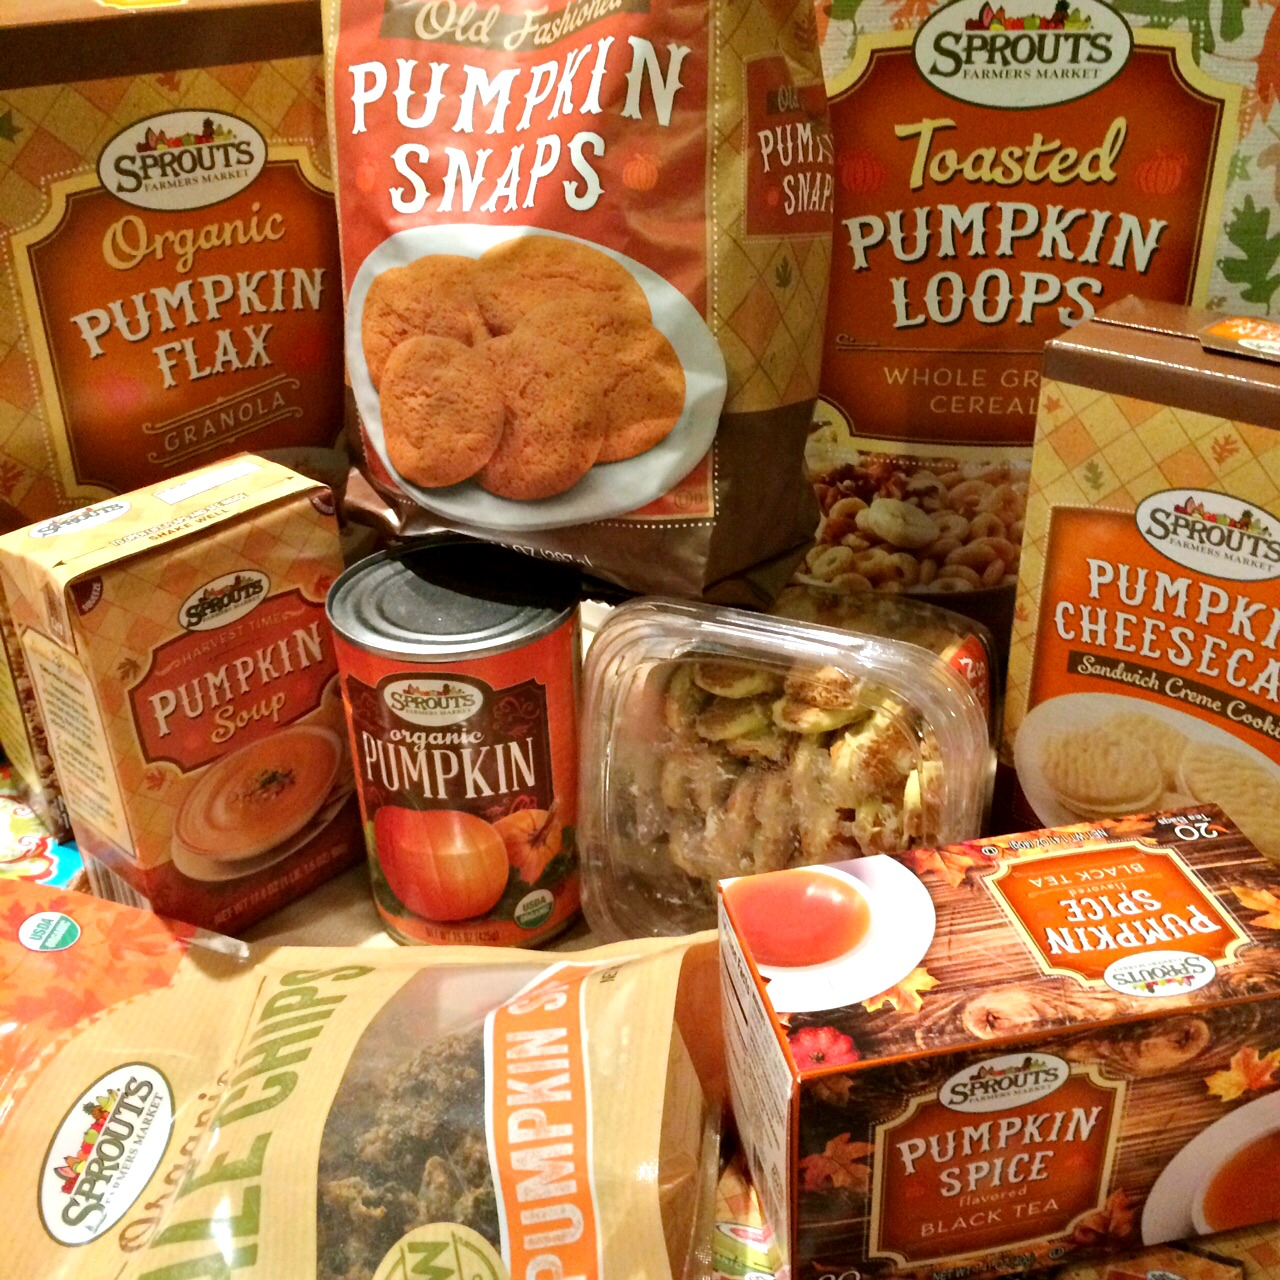 Sprouts Pumpkin Items